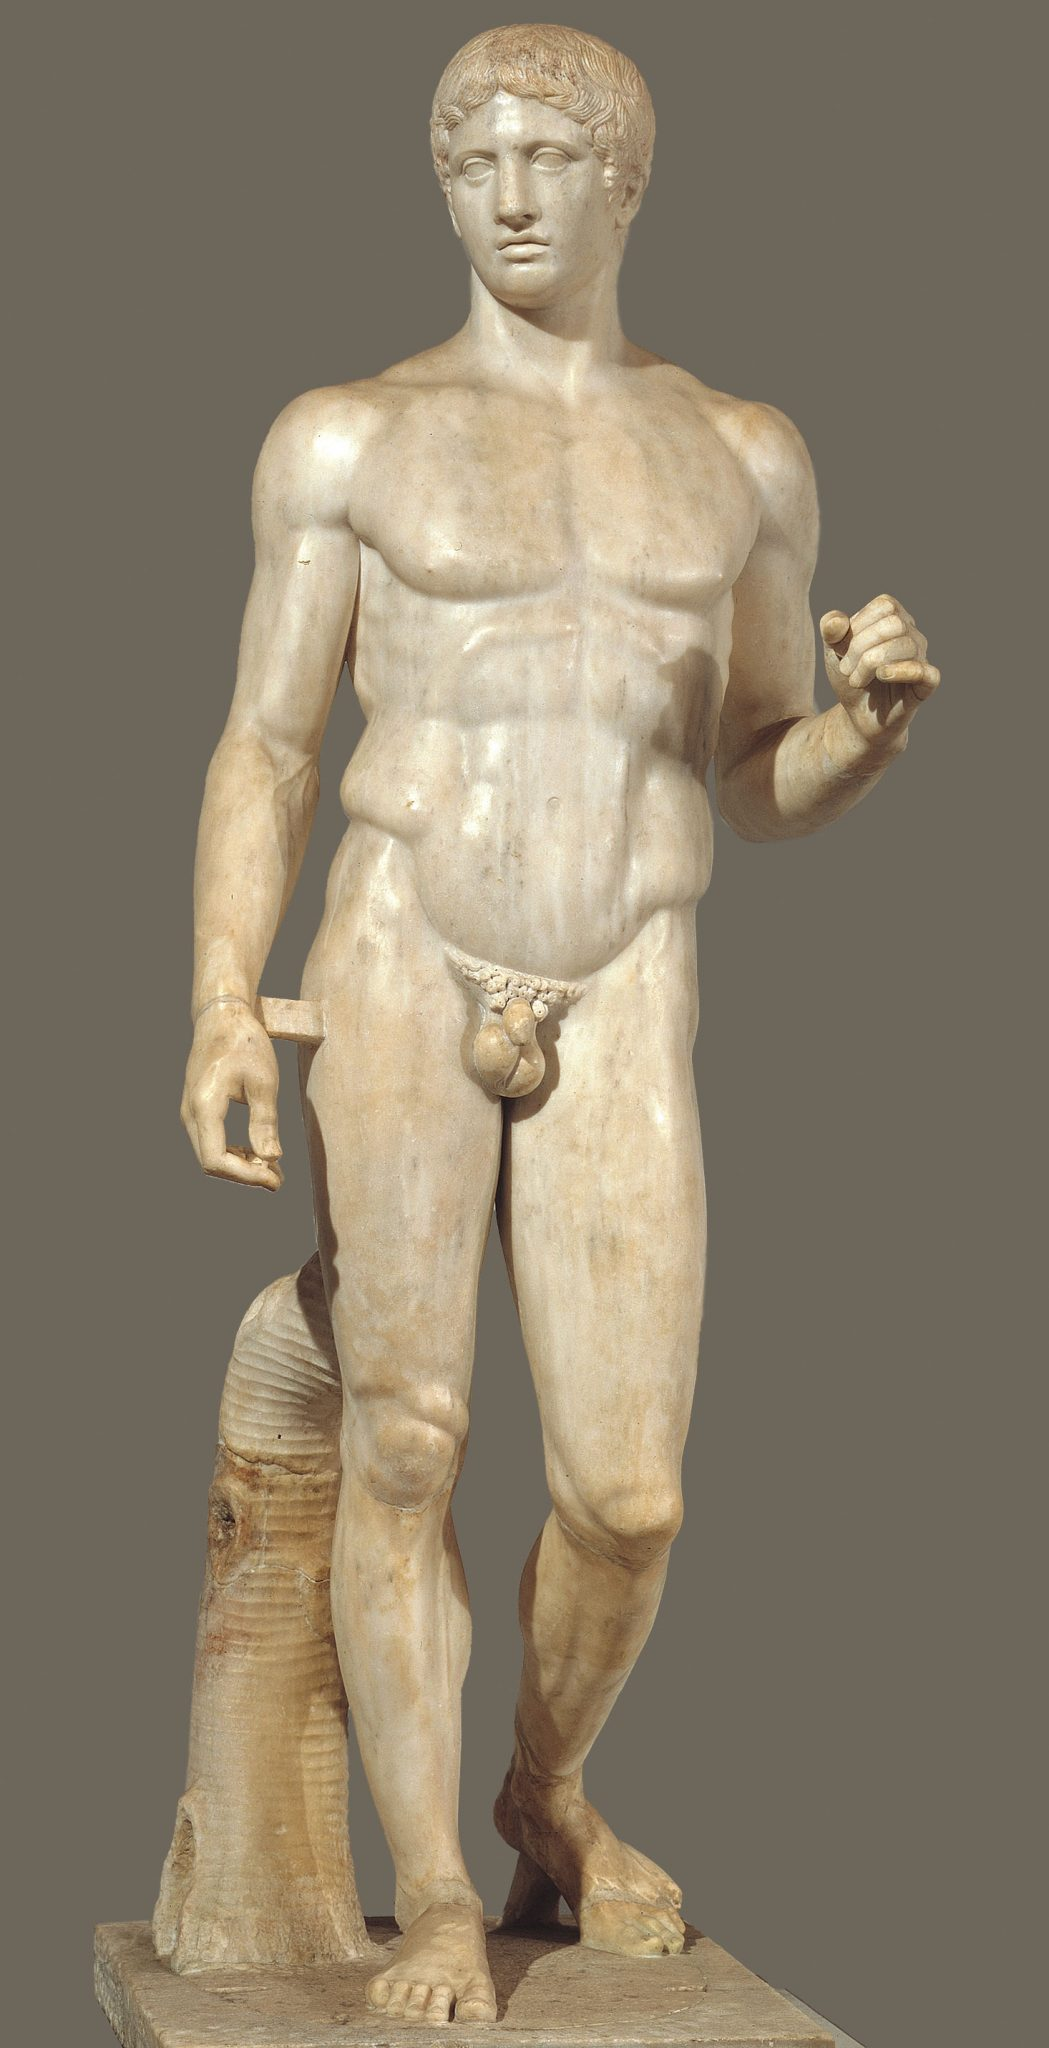 Statue of Polykleitos' Doryphoros (Girl, look at that body)